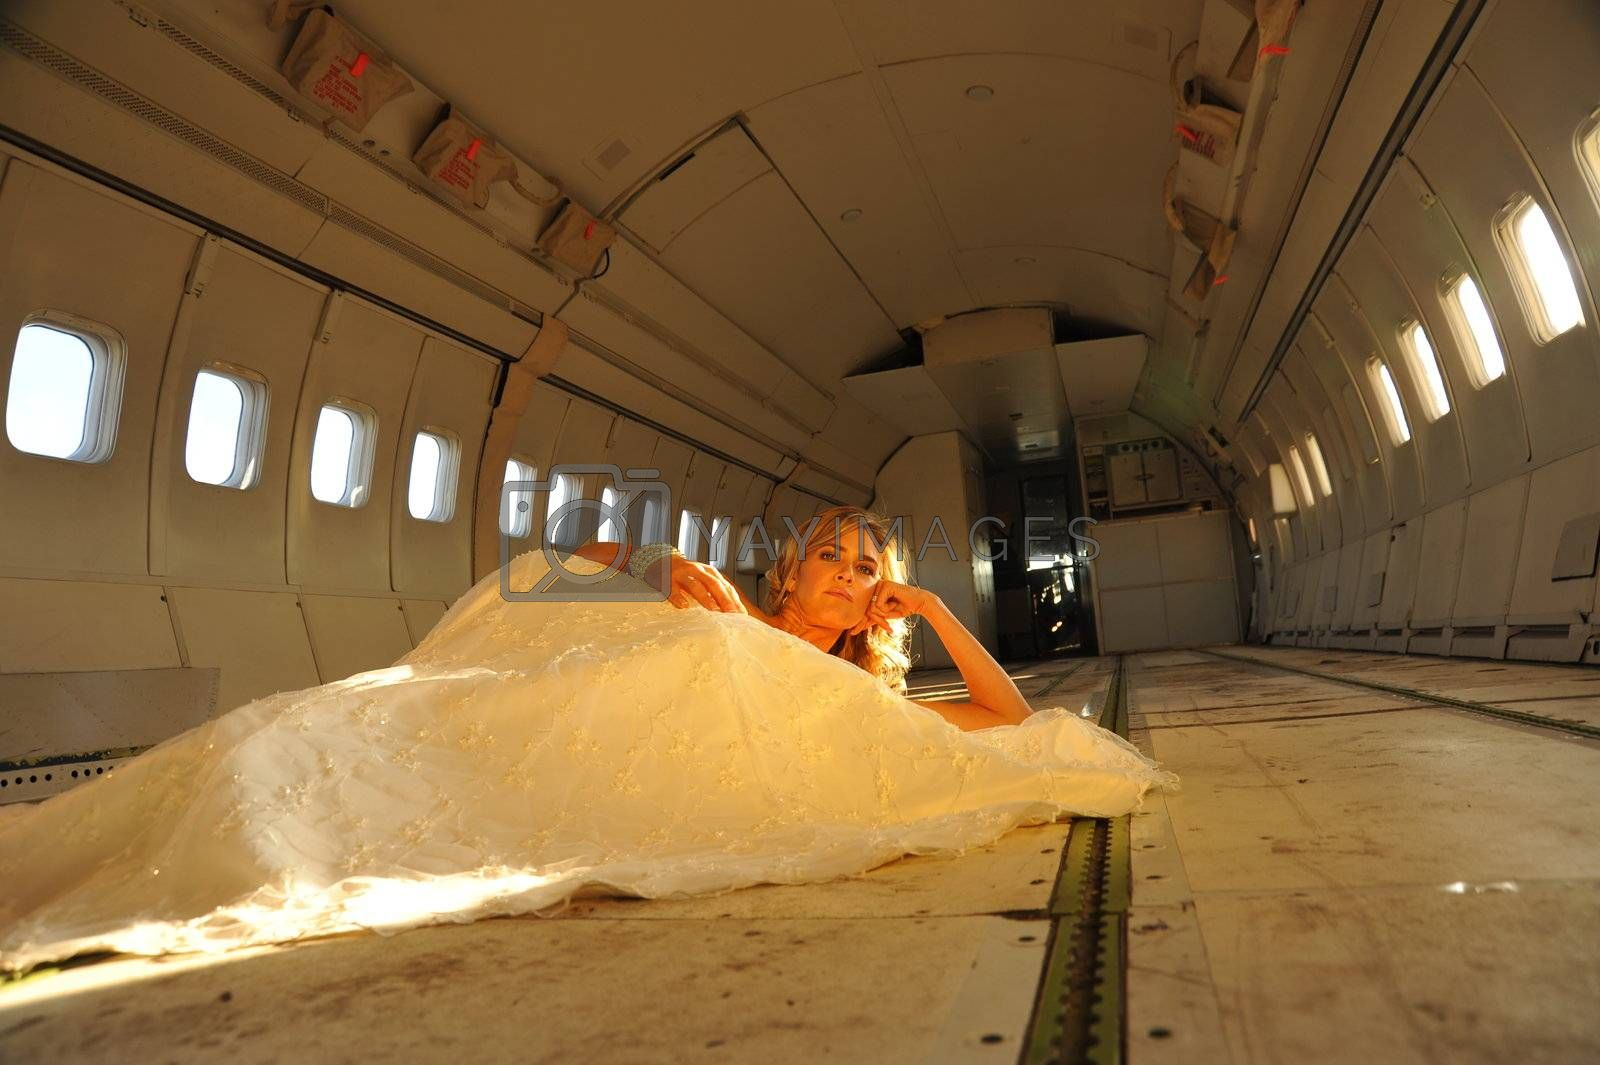 sexy young  adult wedding model laying in the fuselage of airplane